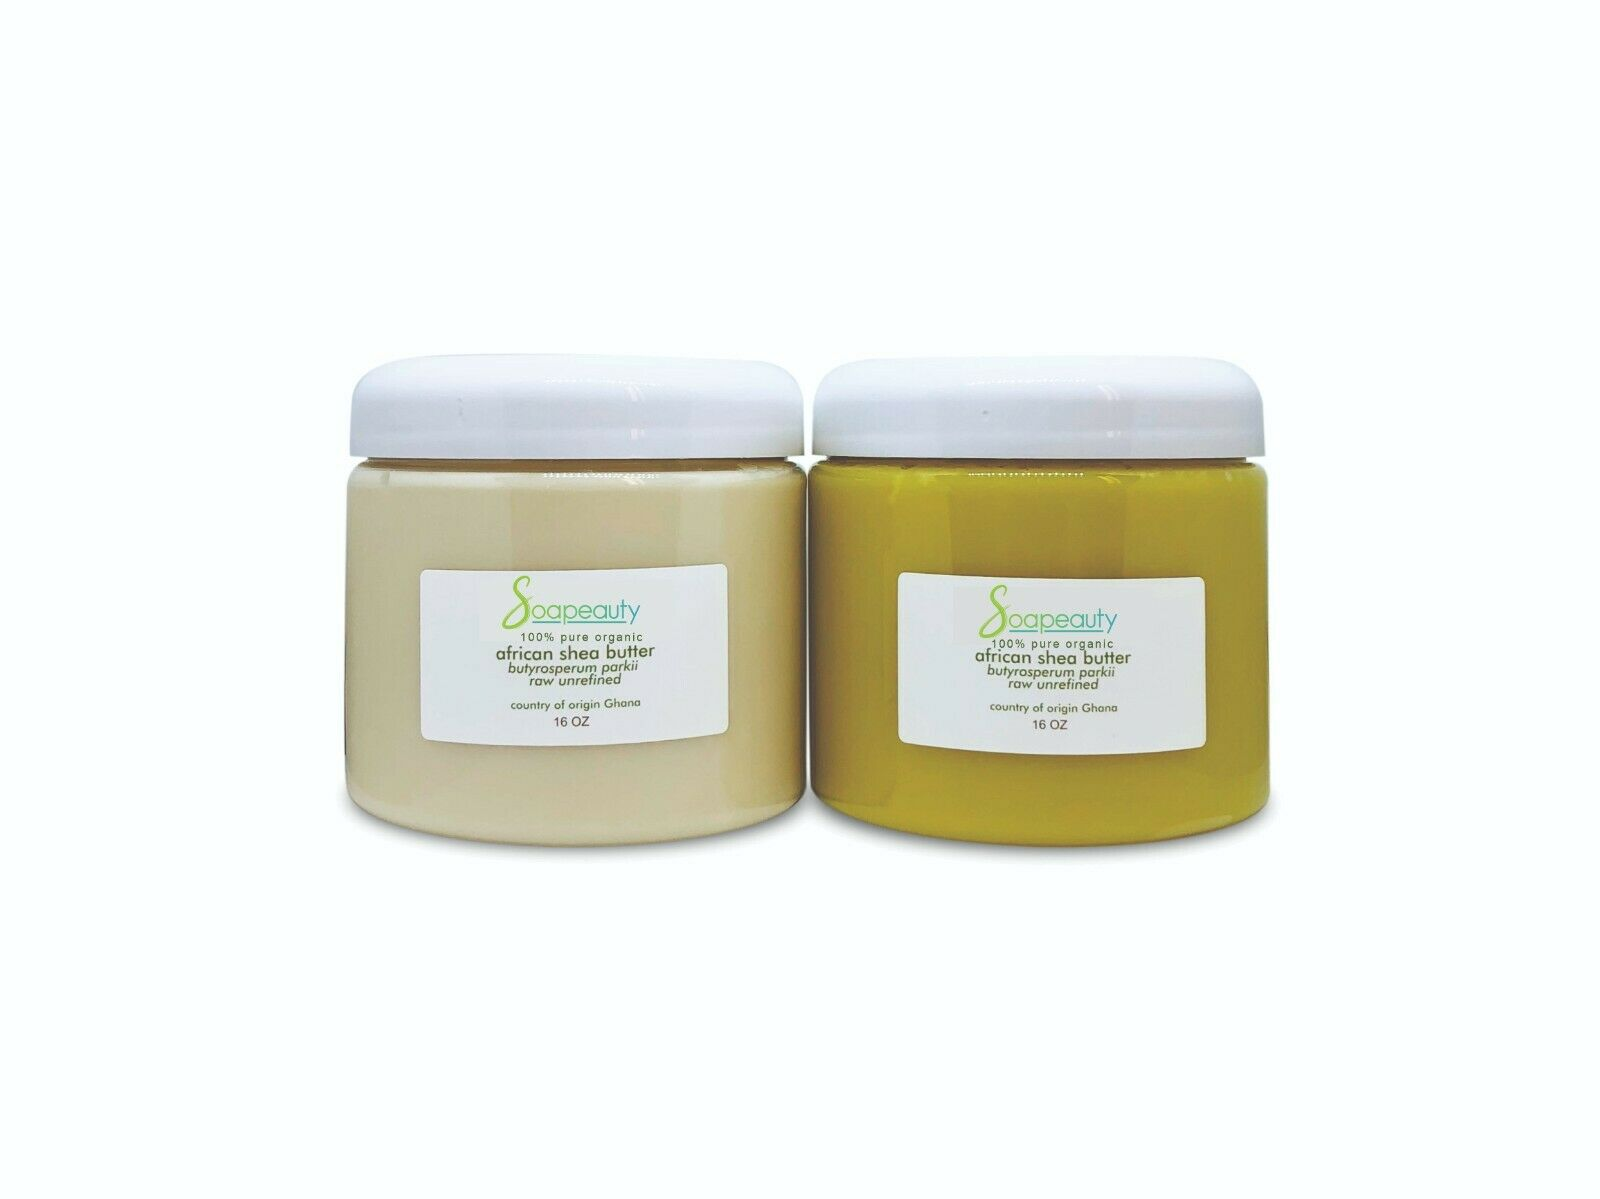 AFRICAN SHEA BUTTER UNREFINED organic cold pressed from GHANA Soapeauty